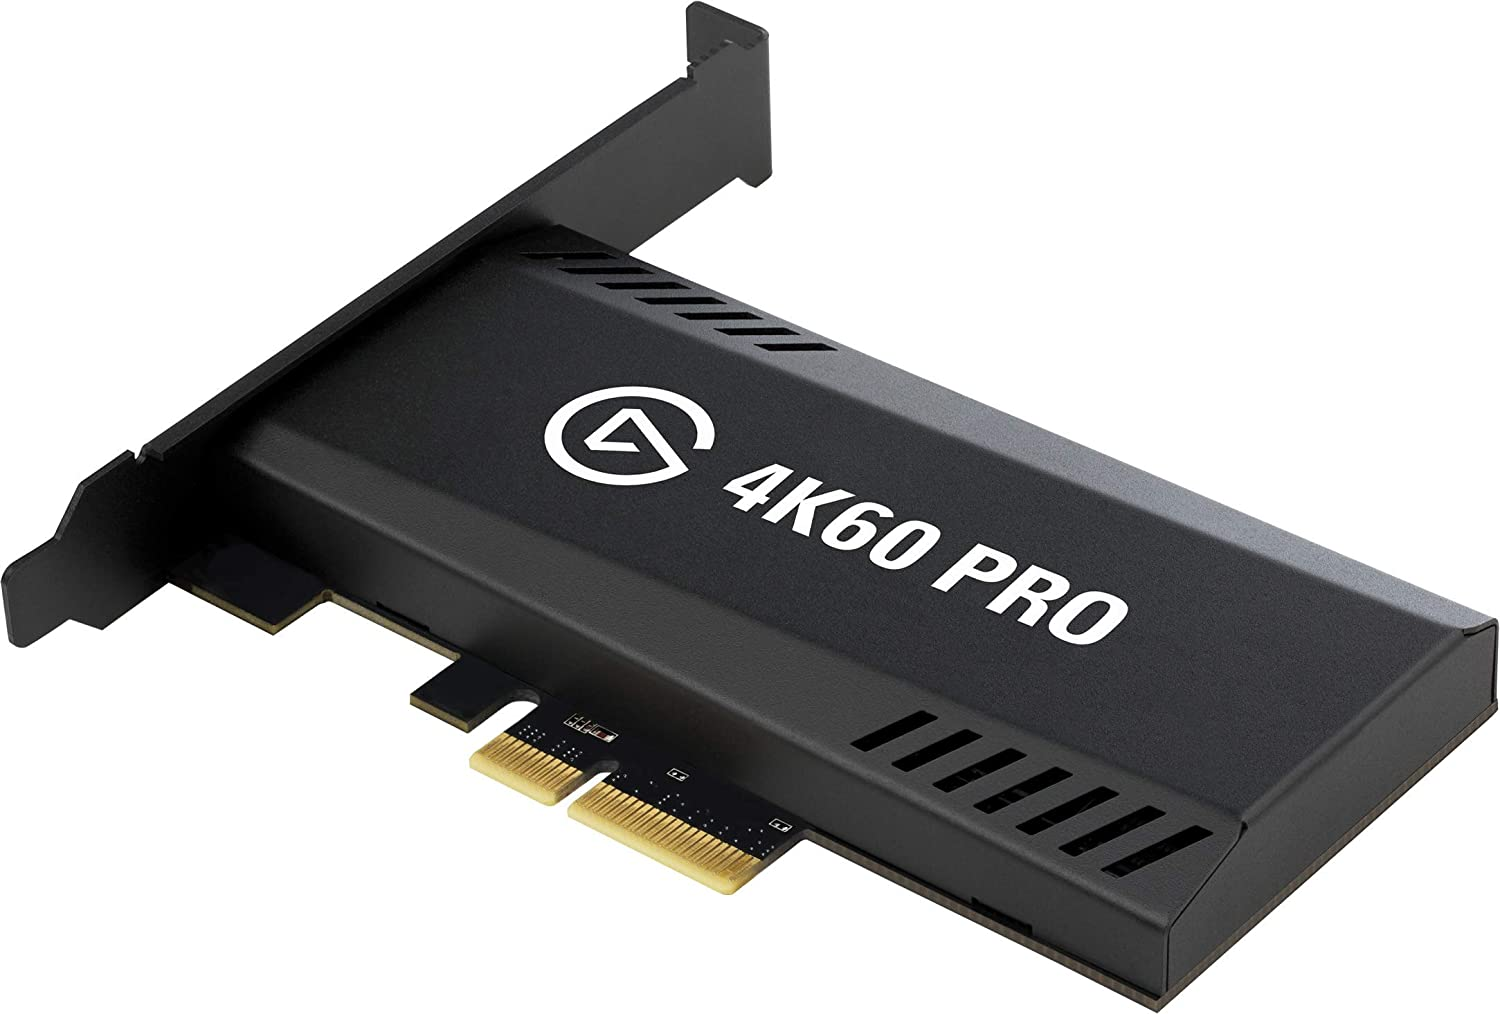 Superior Low Latency Technology PCIe Capture Card 4K60 HDR10 Capture and PassThrough Elgato Game Capture 4K60 Pro MK.2